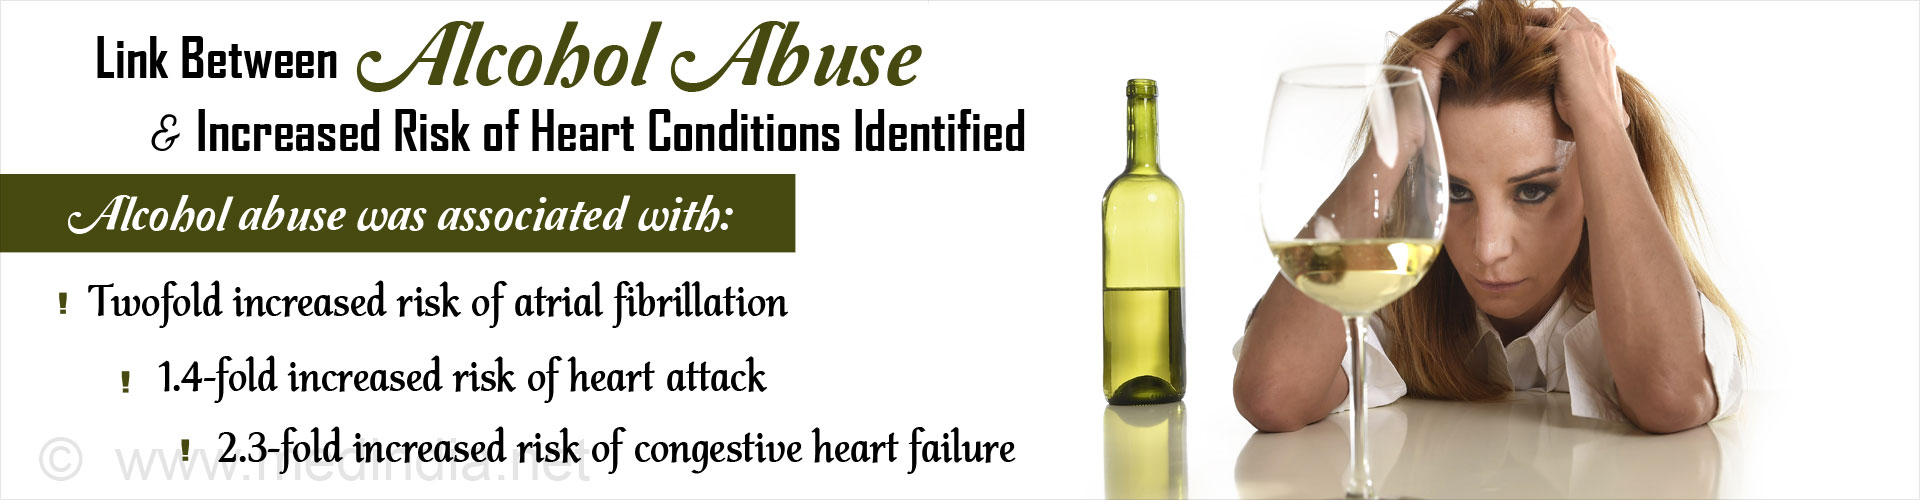 Alcohol Abuse Increases the Risk of Heart Diseases